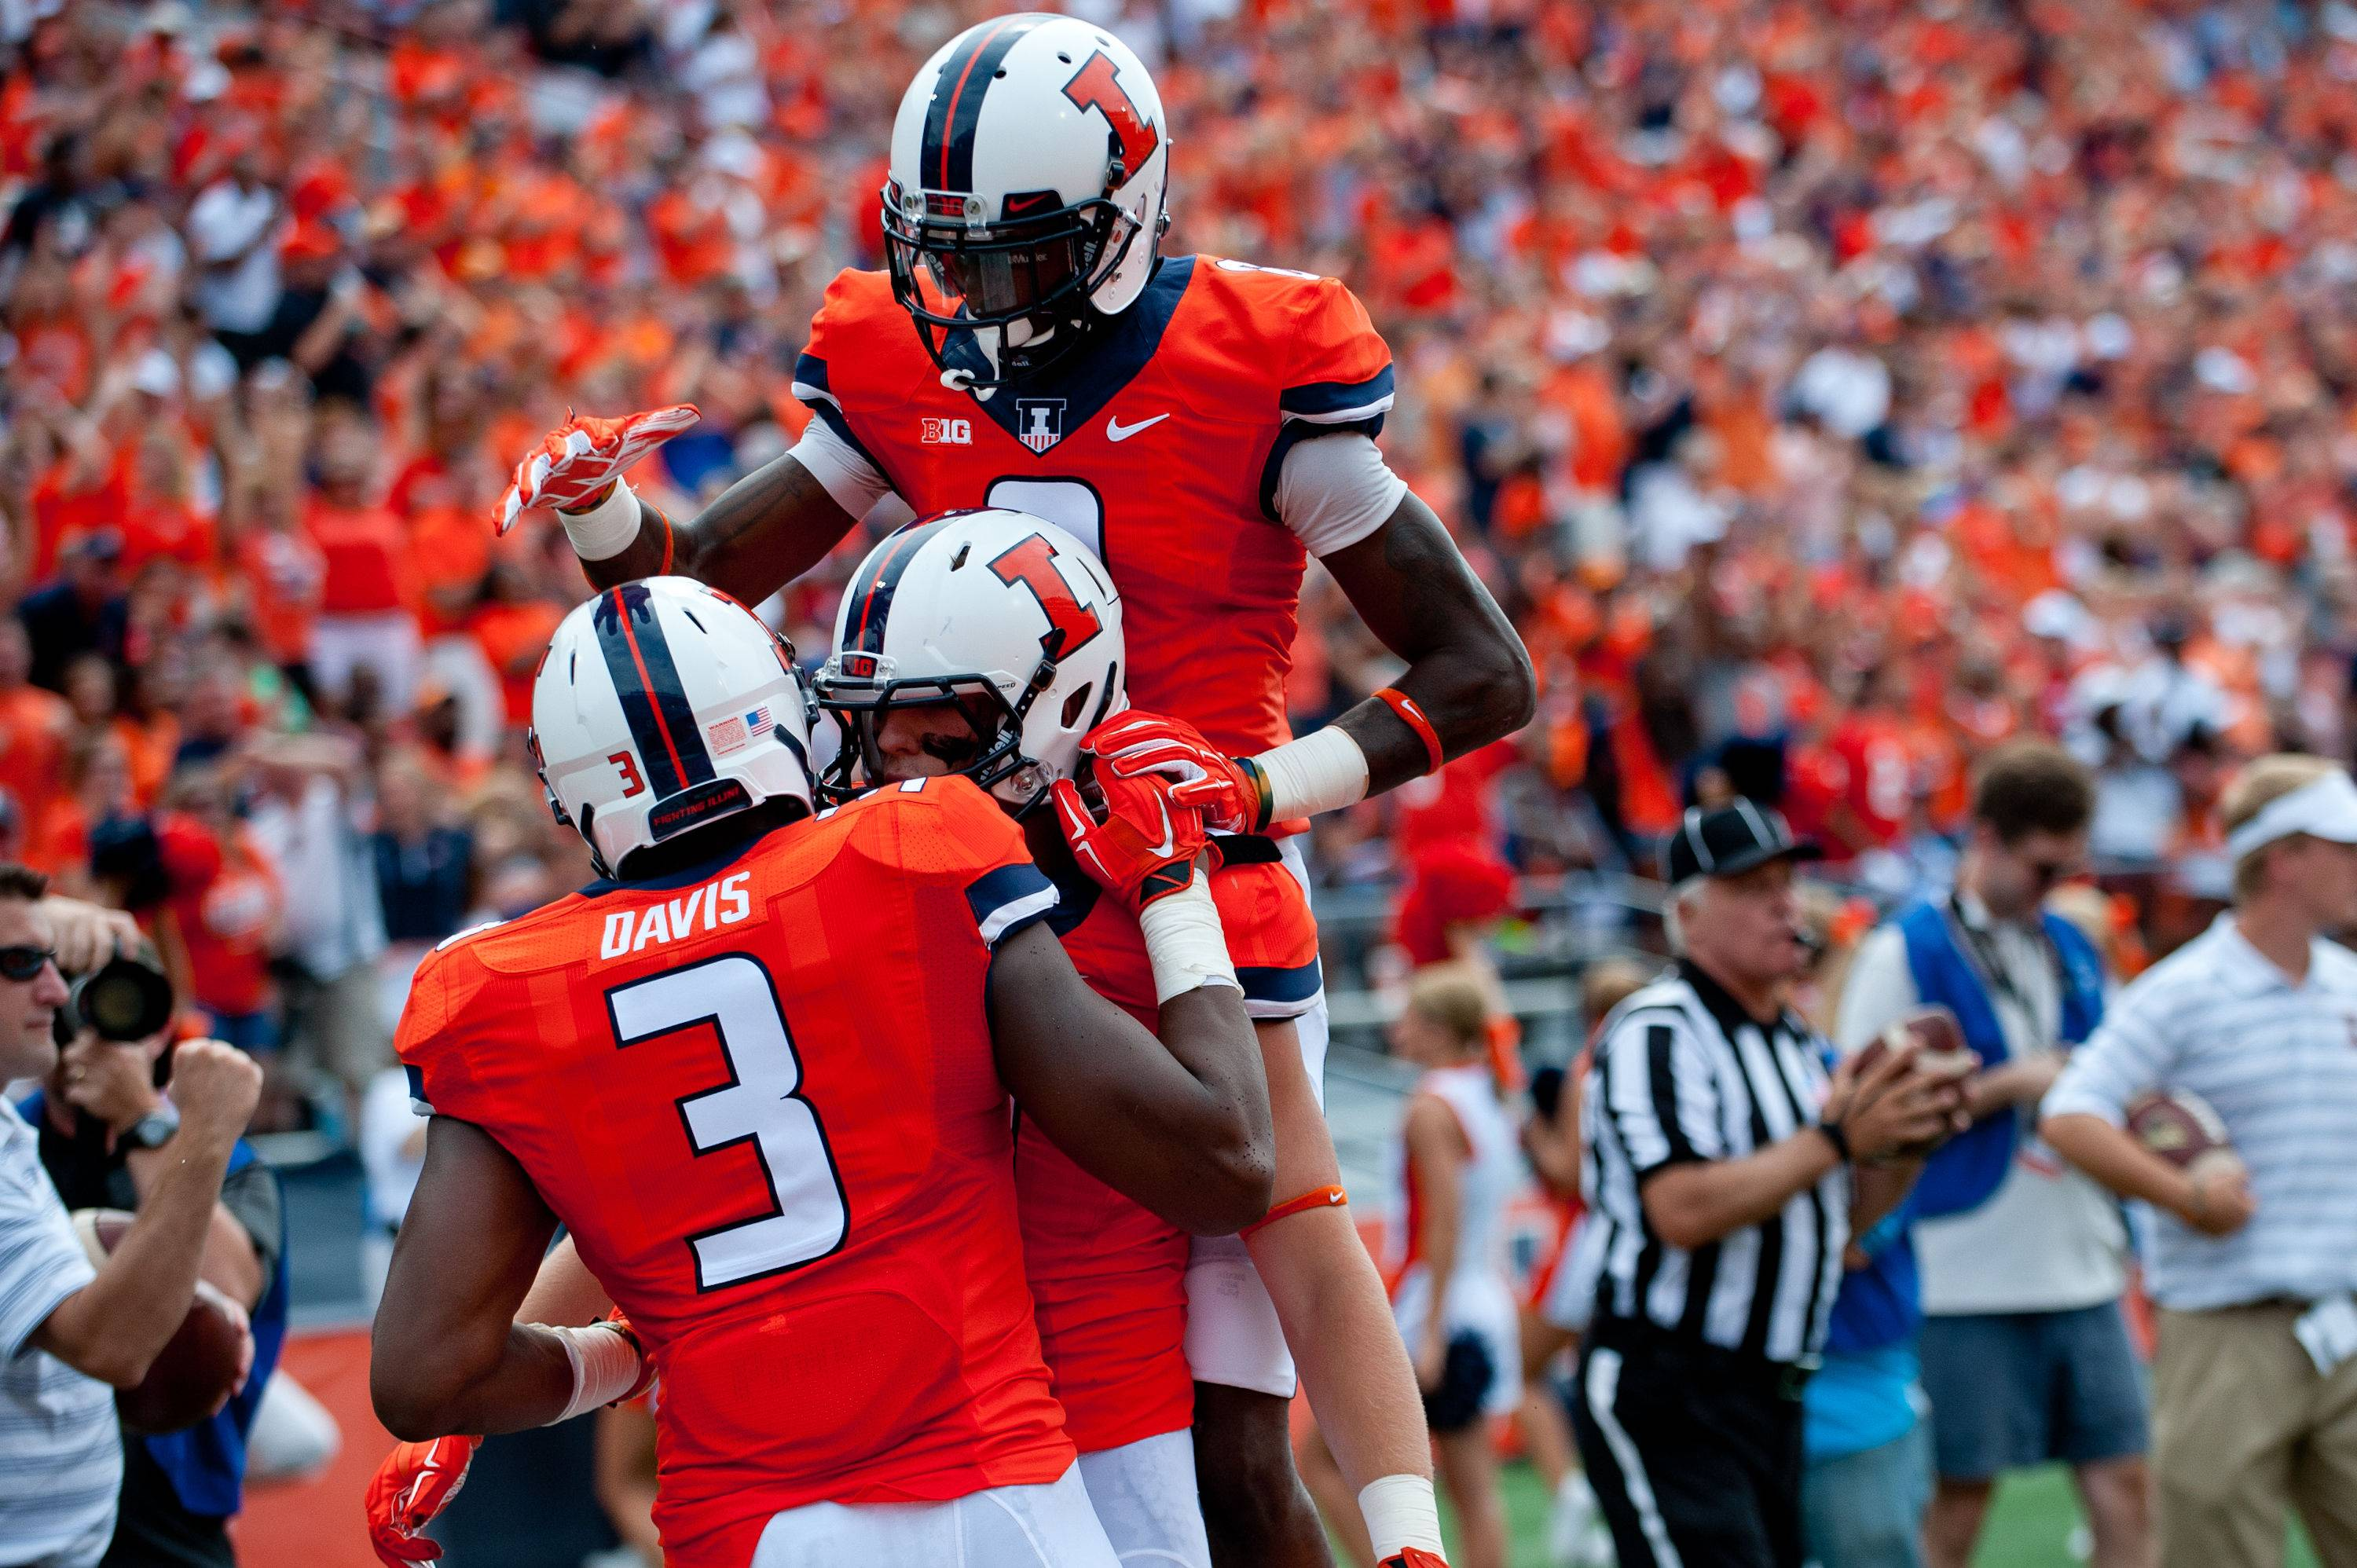 Illinois tight end Jon Davis (3) is congratulated by teammate Matt LaCosse (11) and  wide receiver Geronimo Allison (8), top, after scoring a touchdown Saturday during the second quarter of an NCAA college football game against Youngstown State at Memorial Stadium in Champaign.